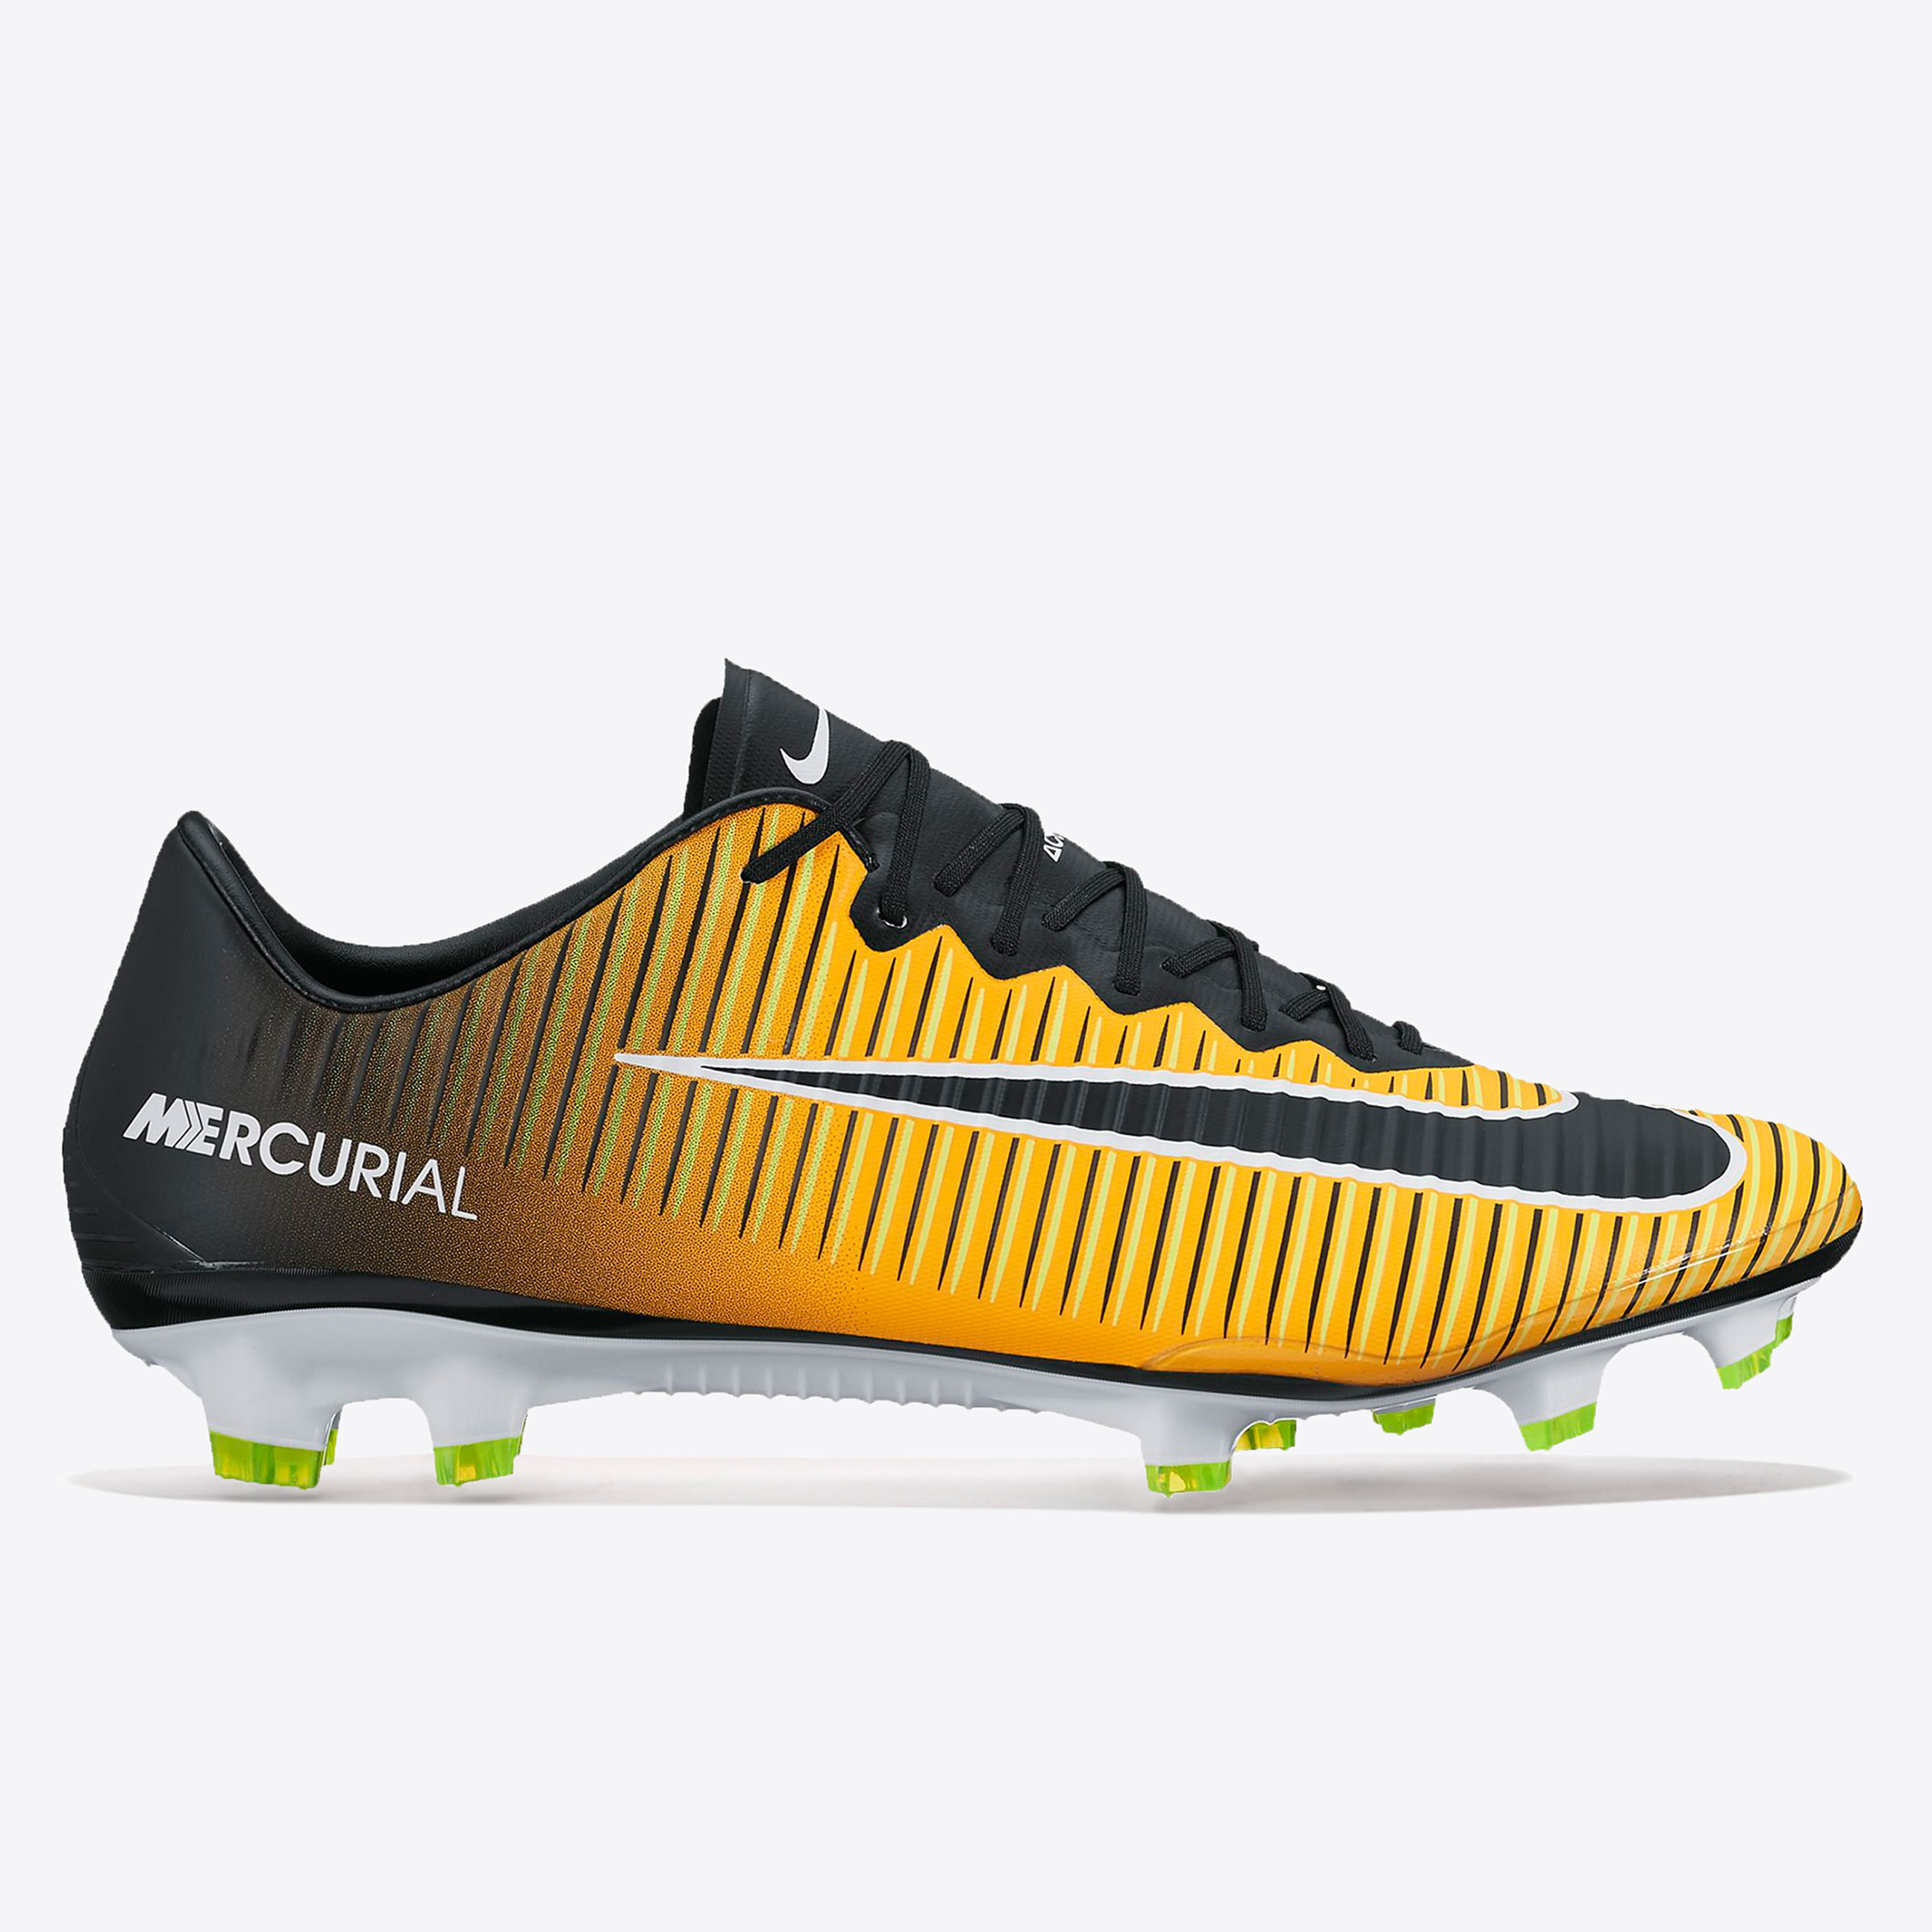 Nike Mercurial Vapor XI Firm Ground Football Boots - Laser Orange/Blac